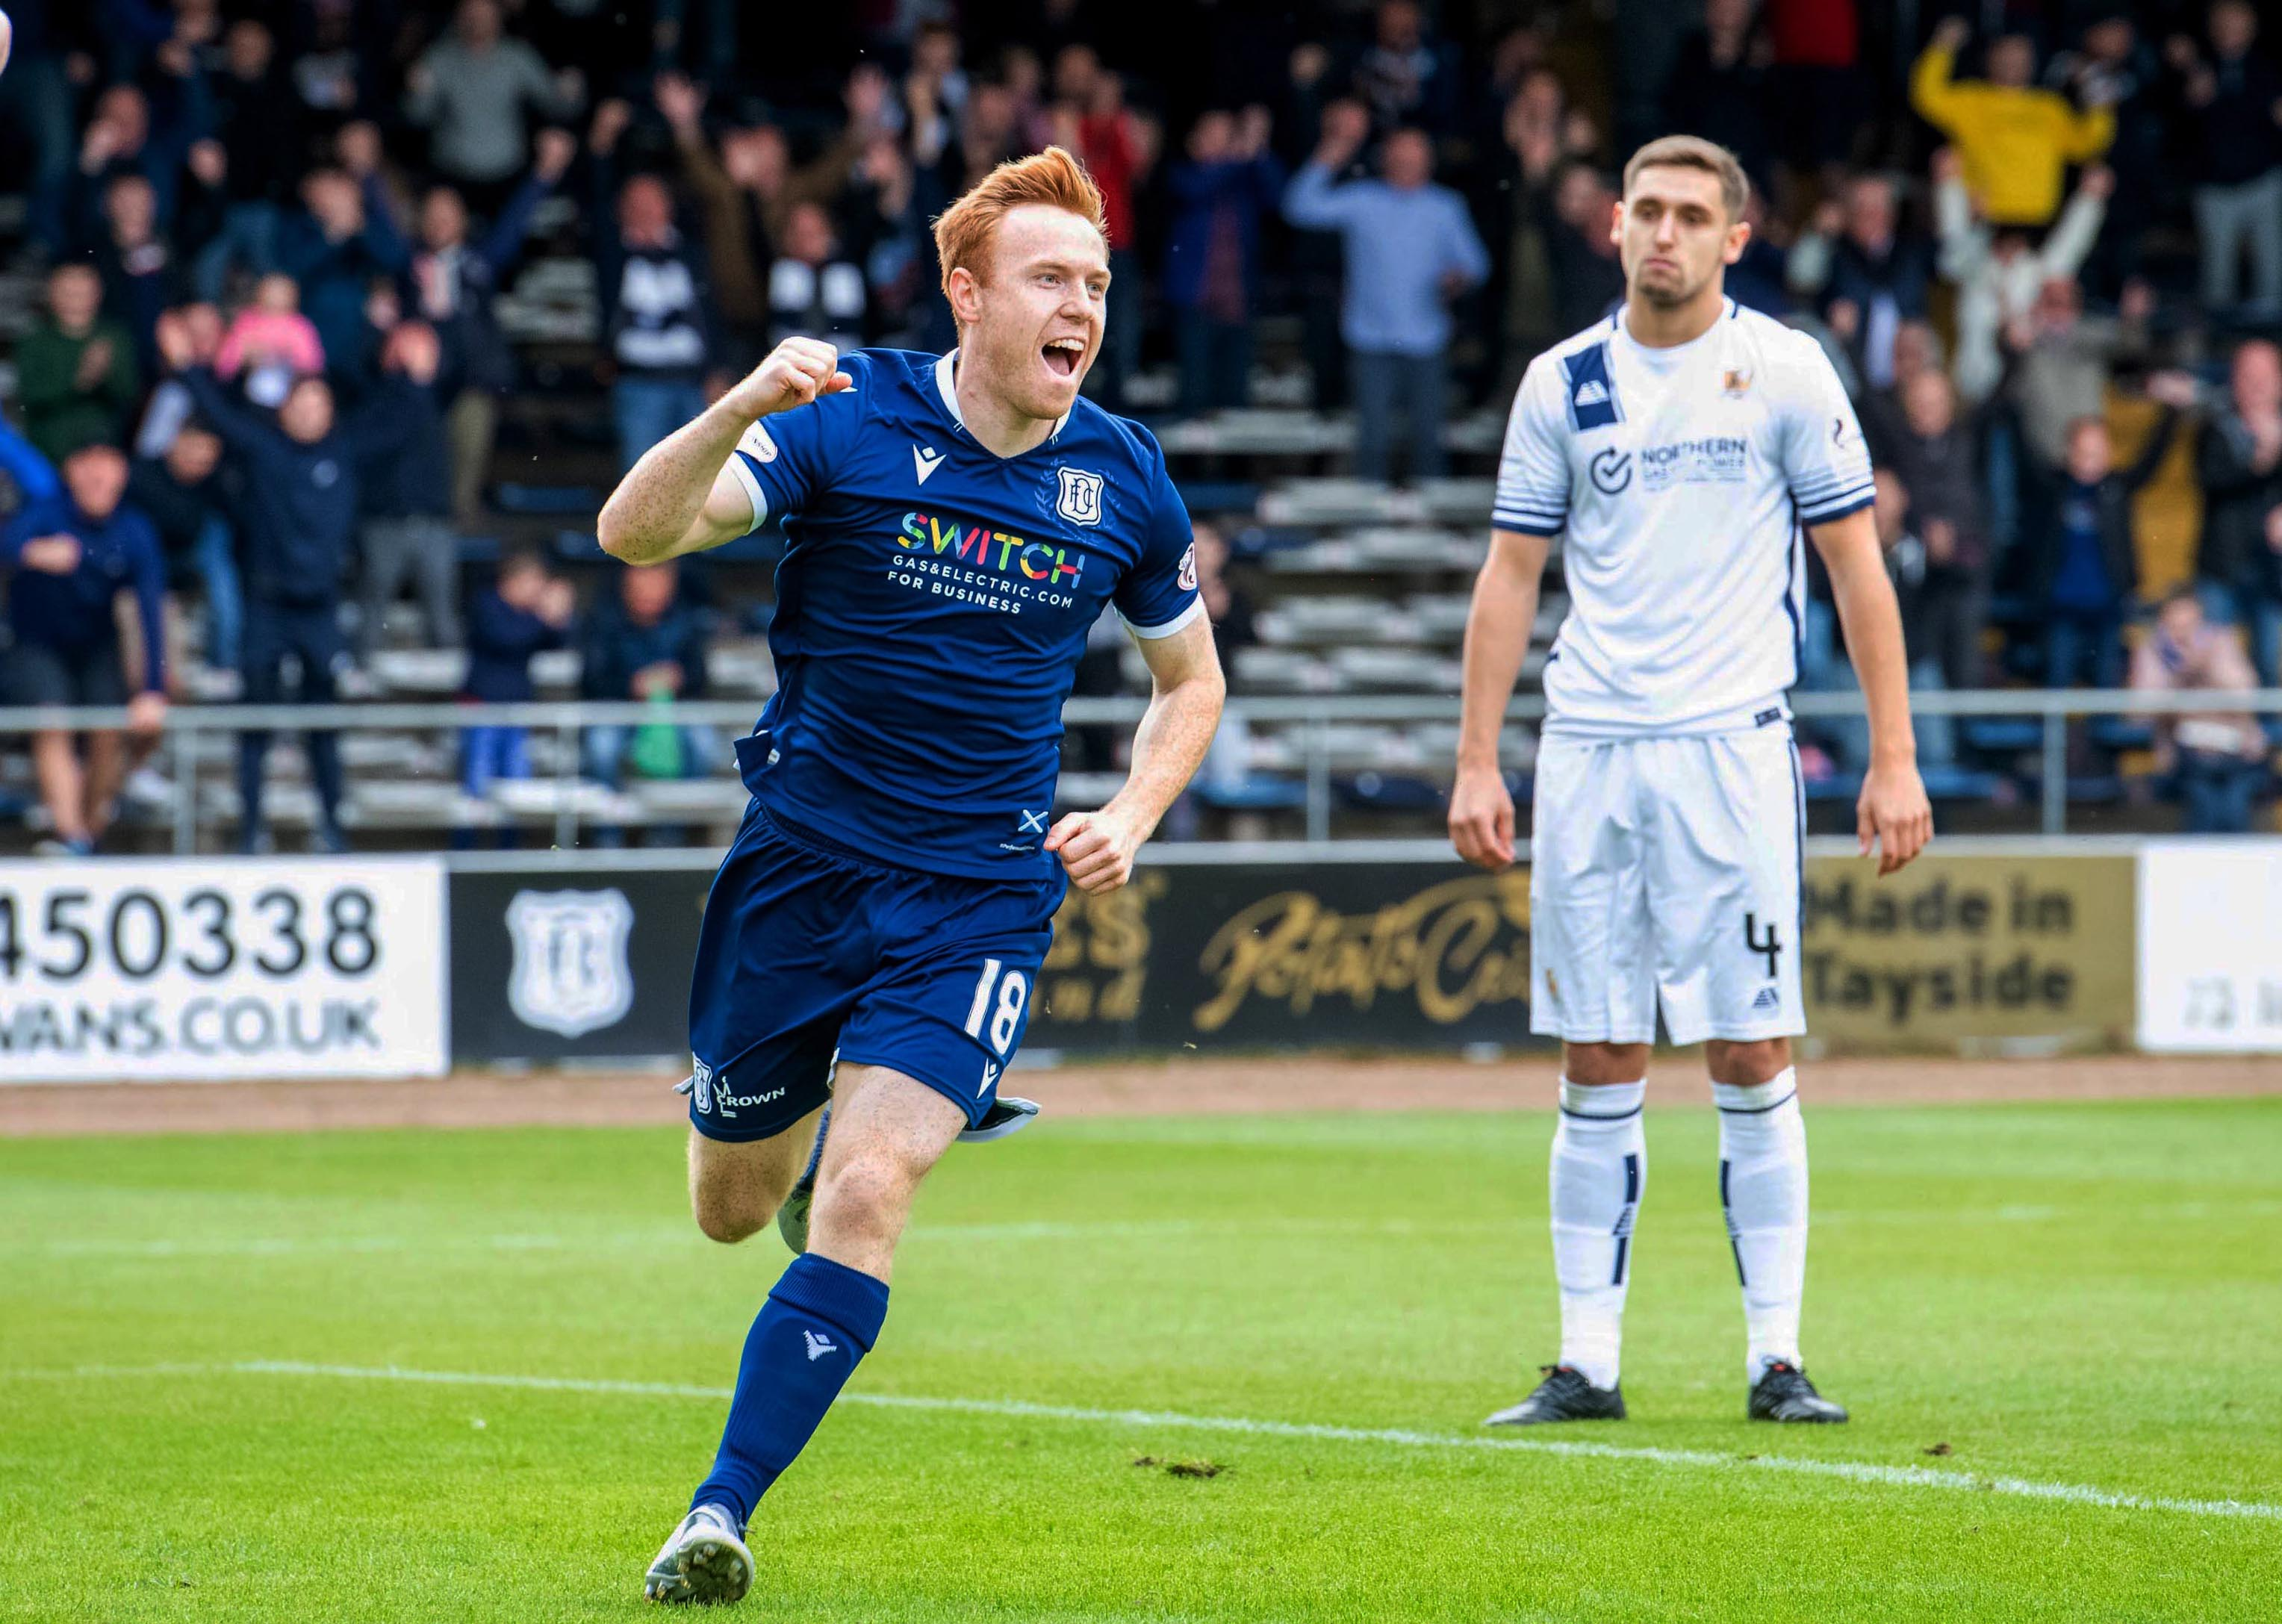 Dundee's Danny Johnson celebrates his goal during the Ladbrokes Championship match between Dundee and Allo in September.